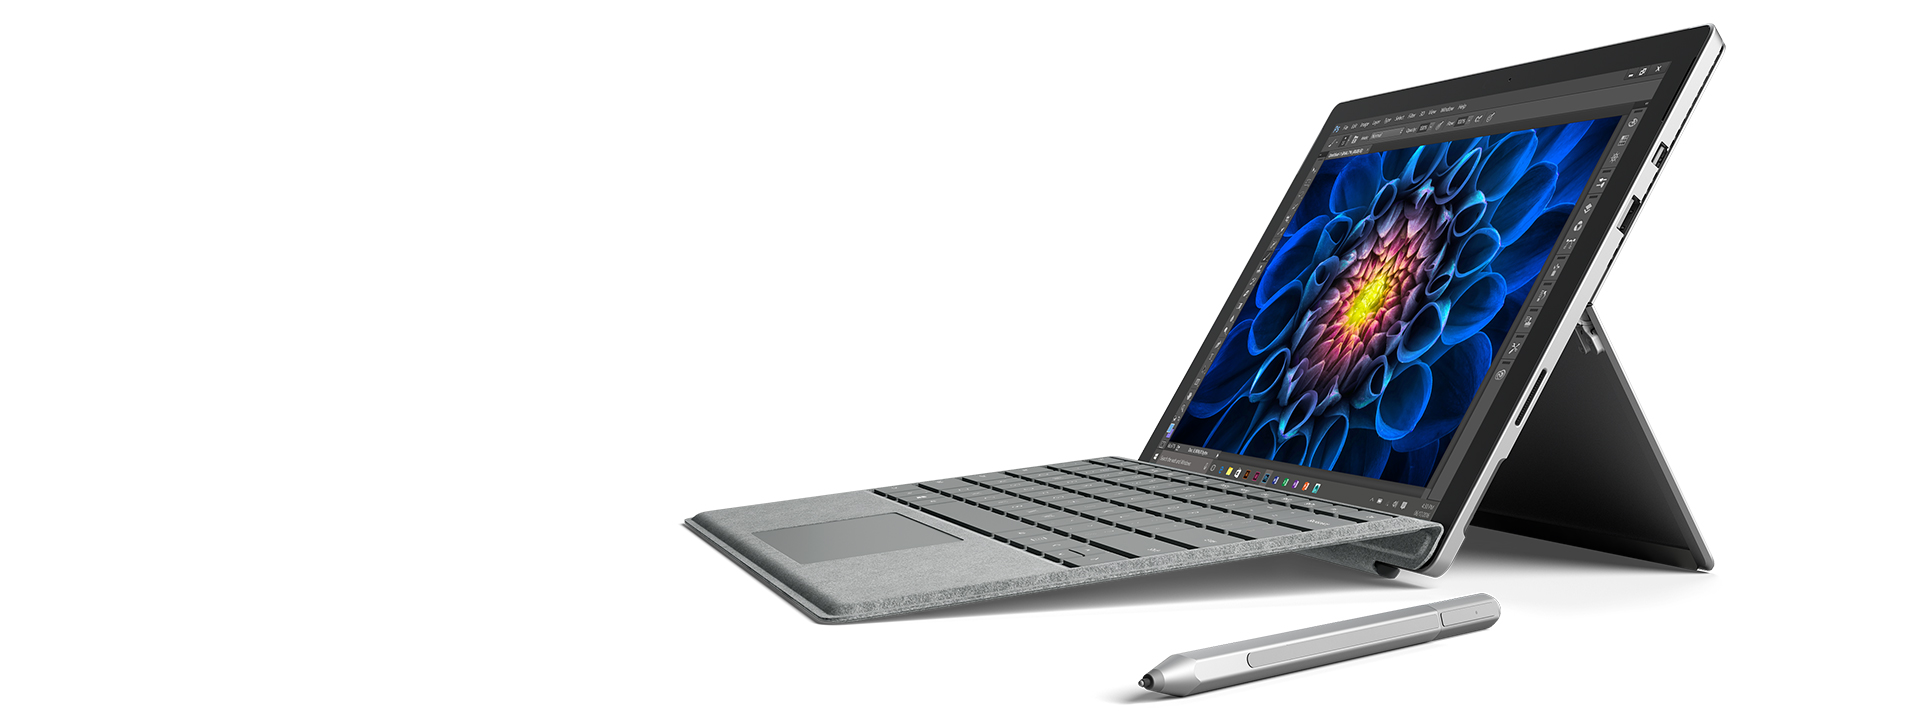 Surface Pro 4 in laptop mode facing left with a Surface Pen next to it